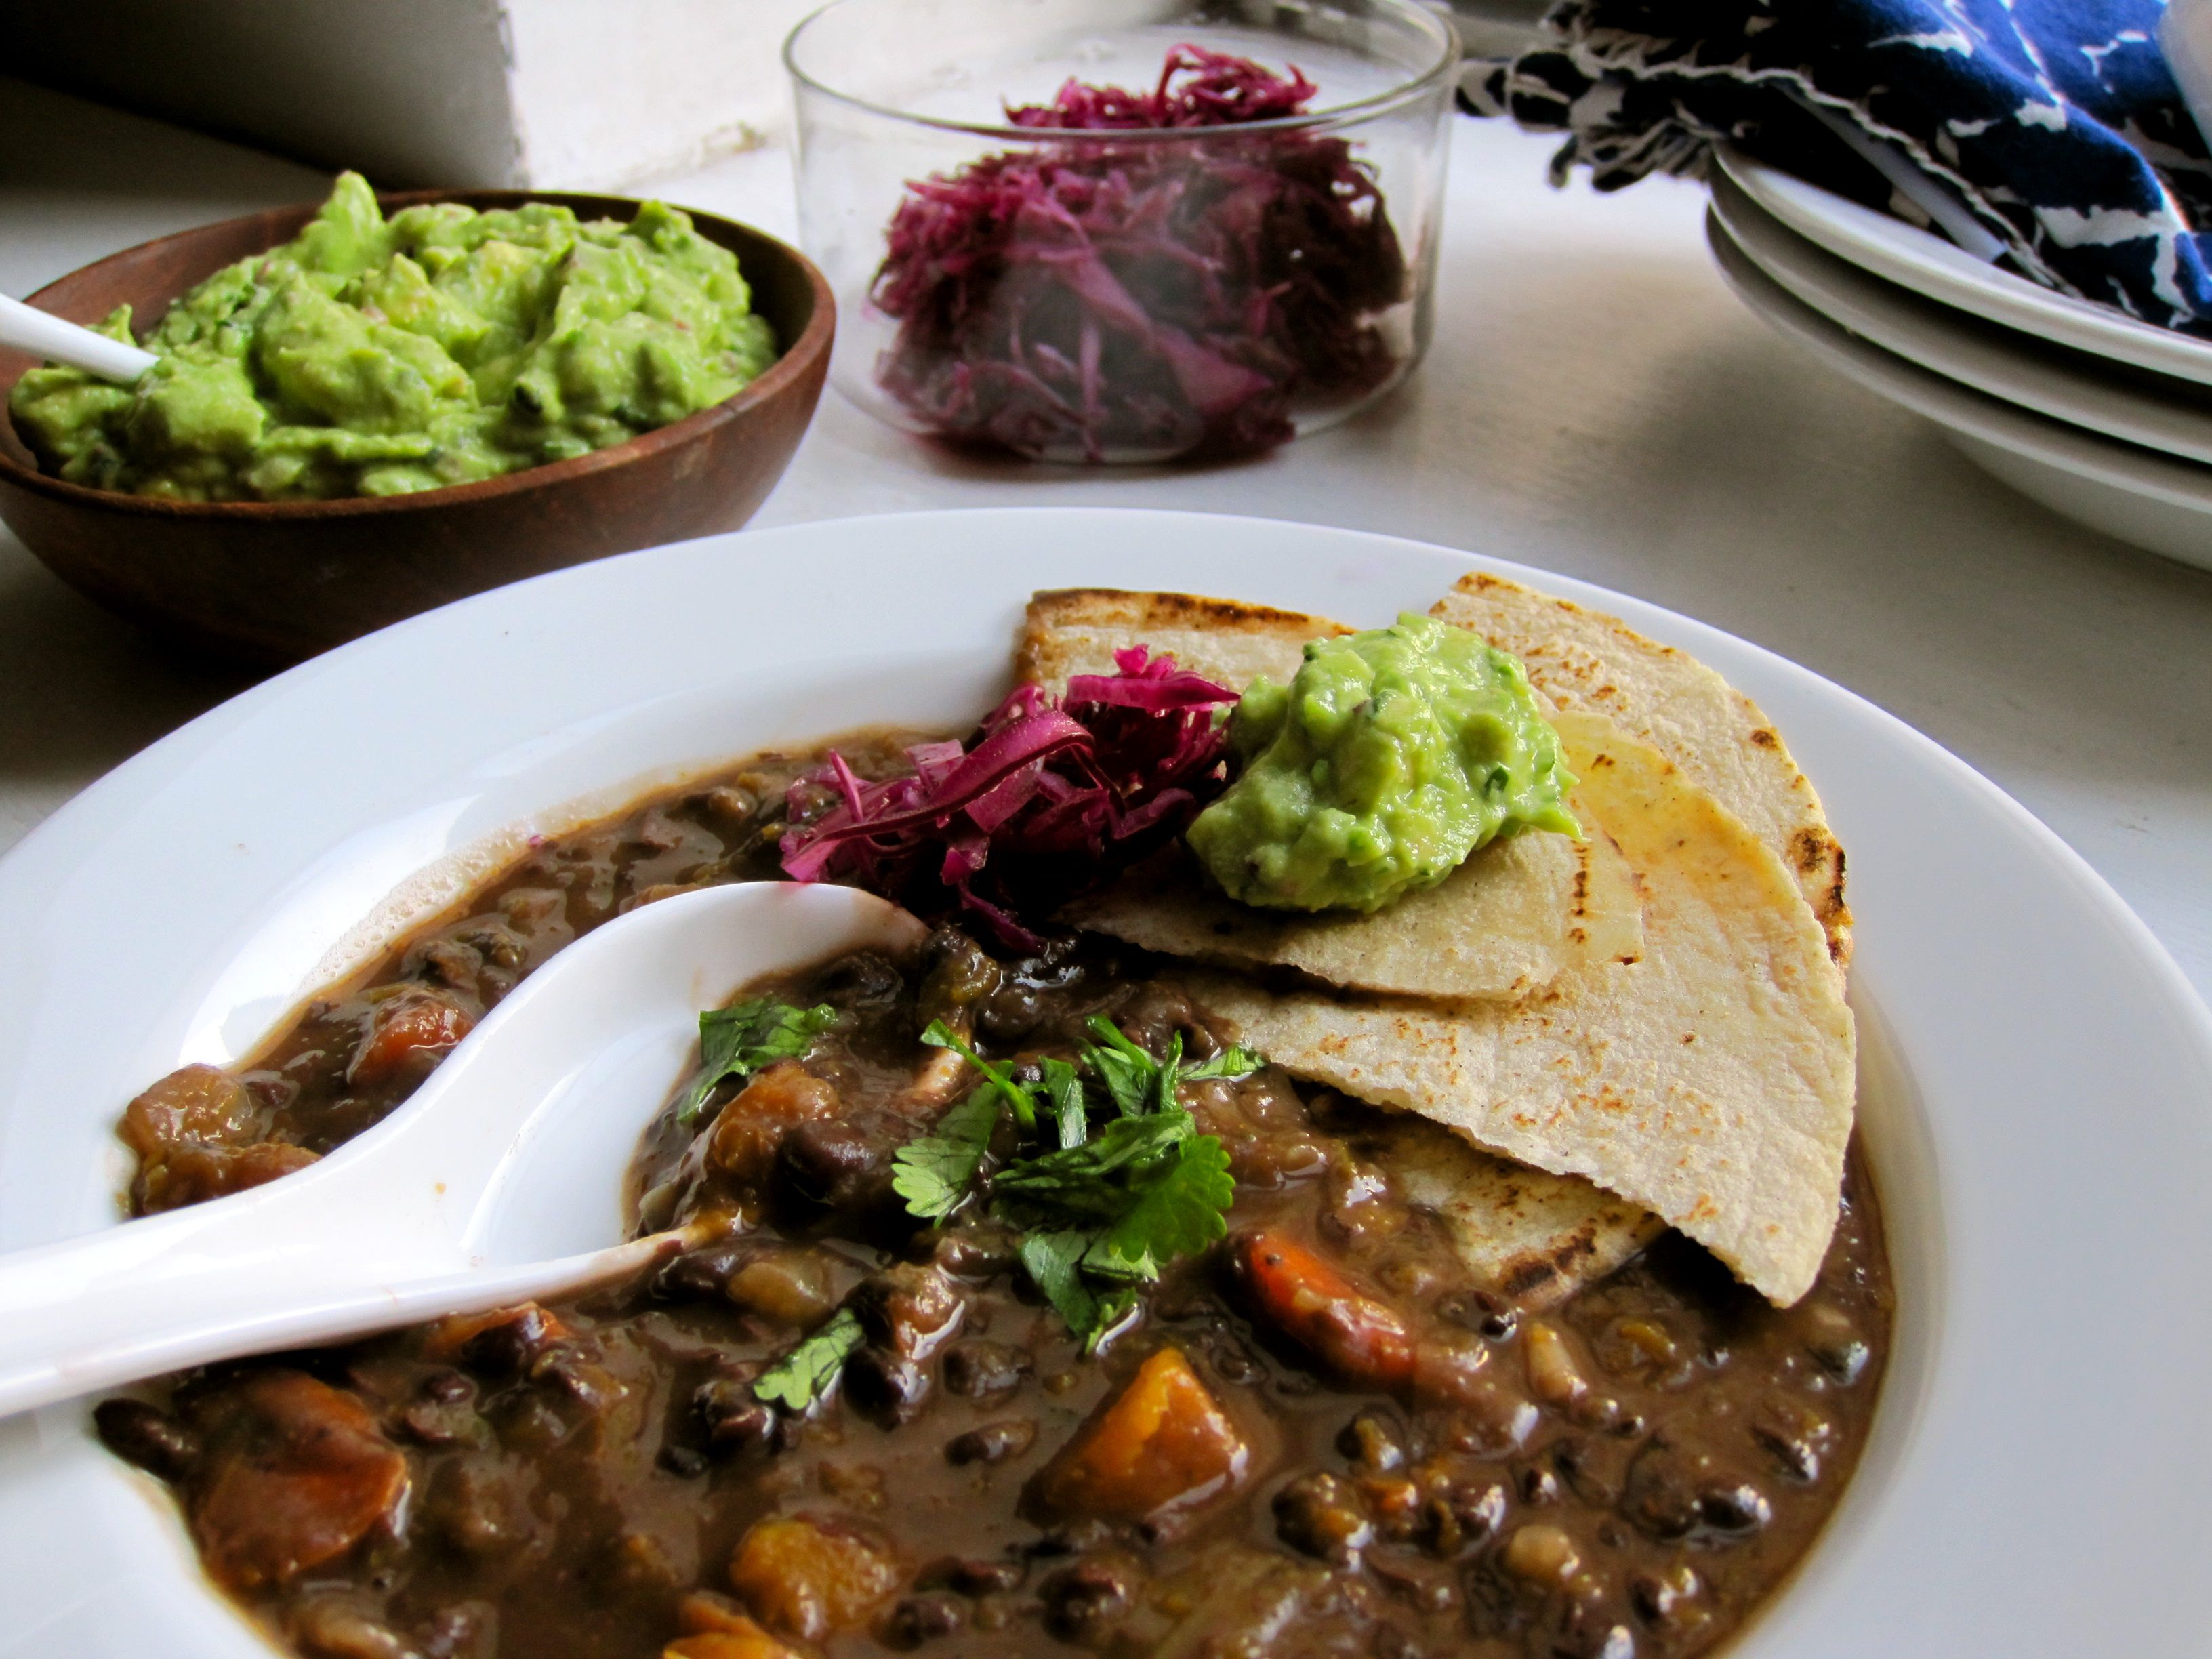 soup with tortilla, guacamole and pickled red cabbage